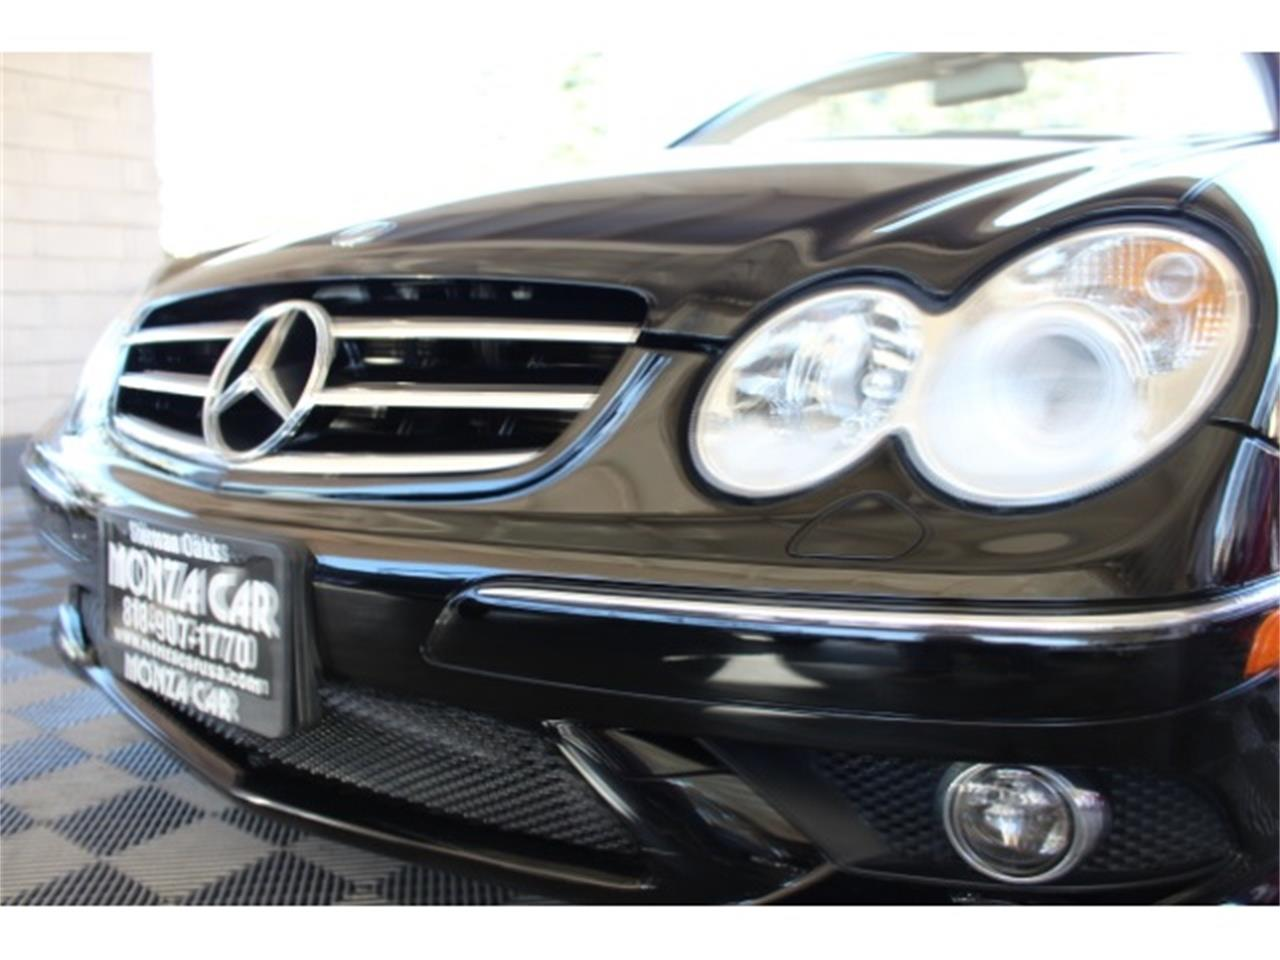 2007 Mercedes-Benz CLK-Class for sale in Sherman Oaks, CA – photo 10